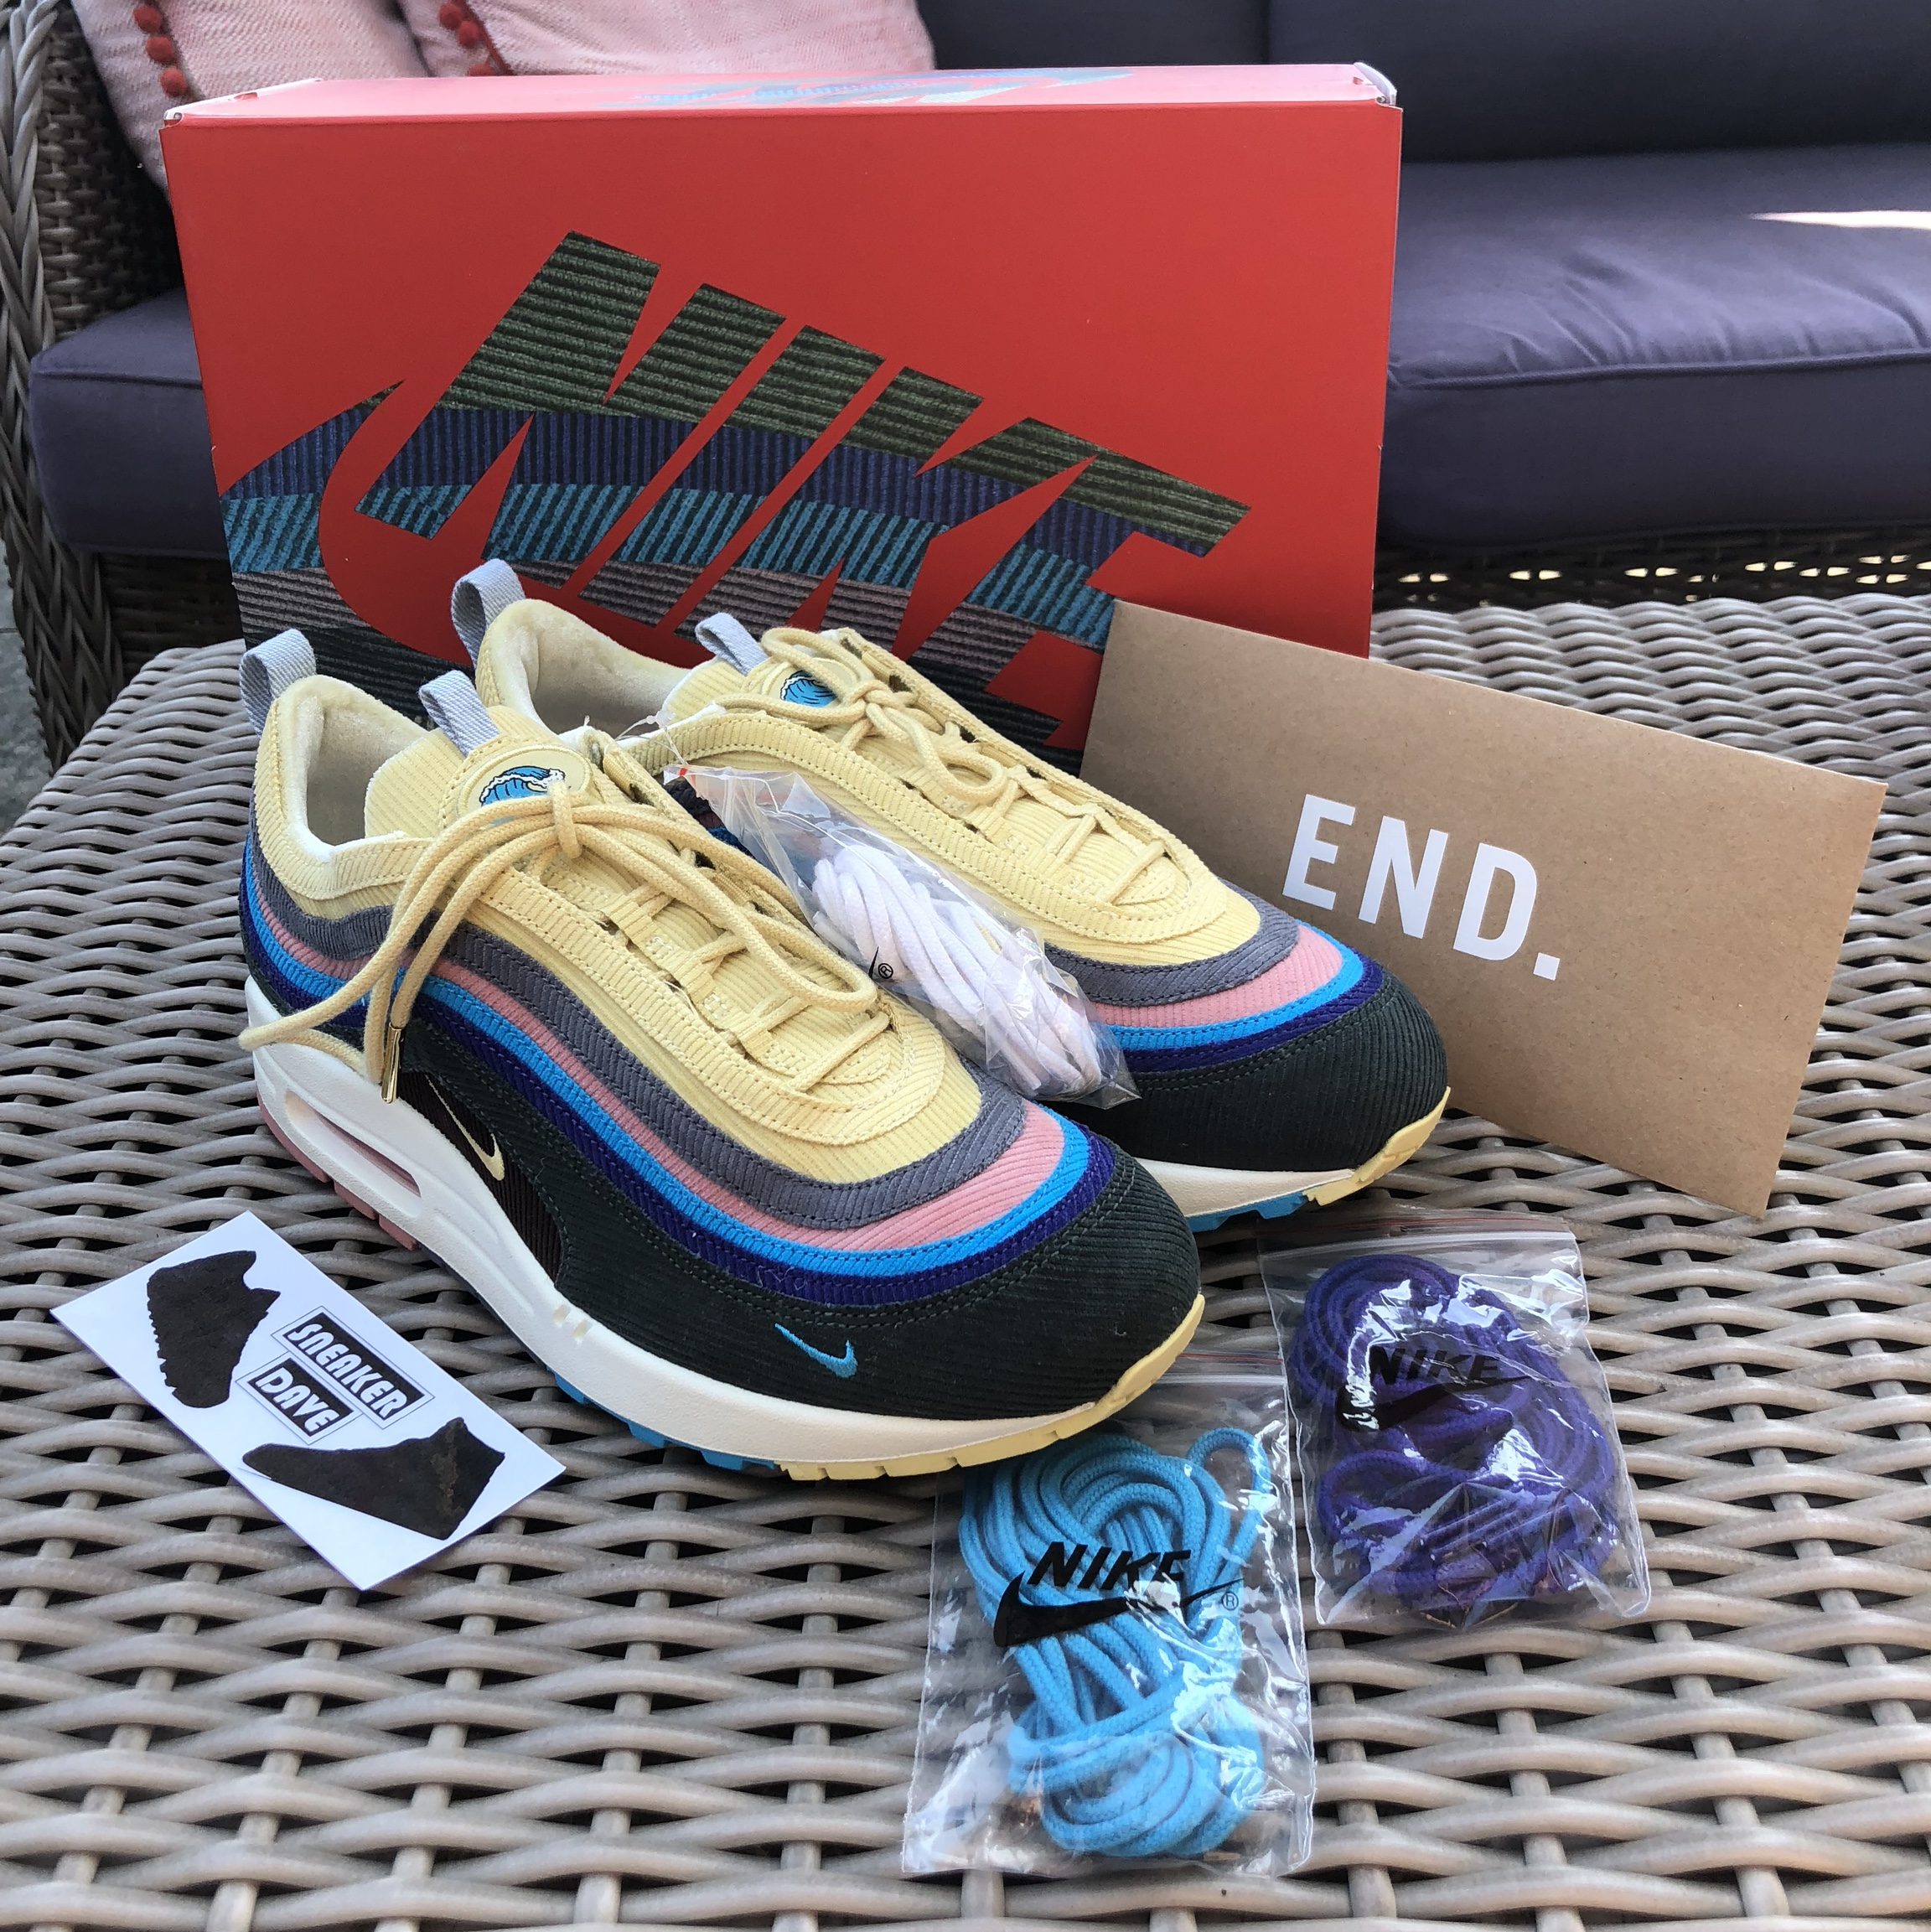 Nike Air Max 971 Sean Wotherspoon Deadstock with Depop